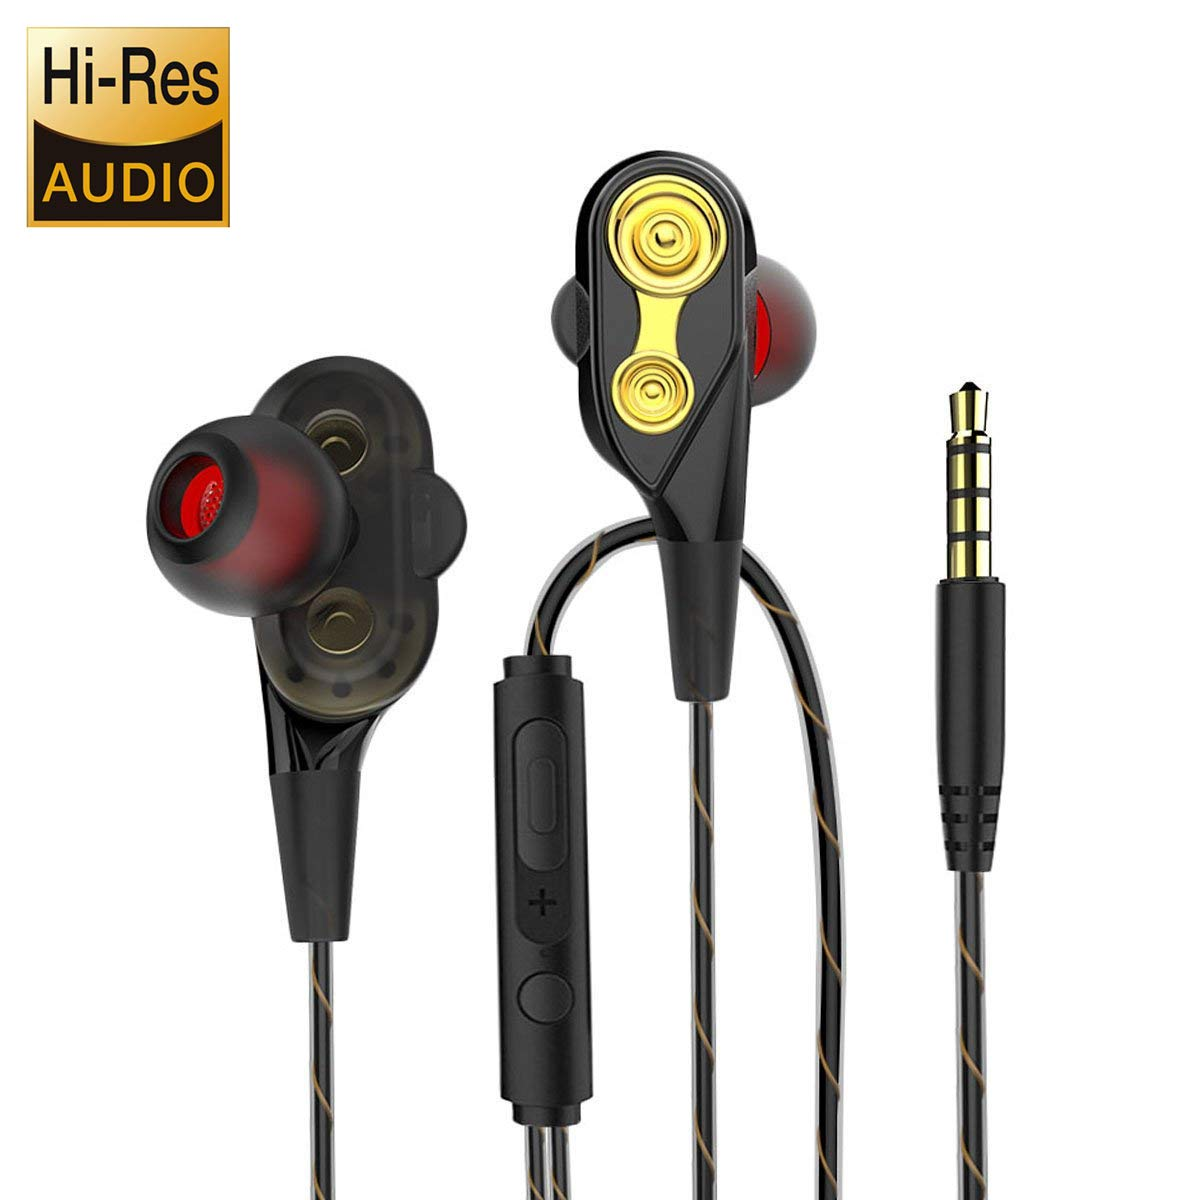 Earbuds Ear Buds in Ear Headphones Wired Earphones Microphone Mic Stereo Volume Control Waterproof Wired Earphone Mp3 Players Tablet Laptop 3.5mm Audio(Dual Driver)